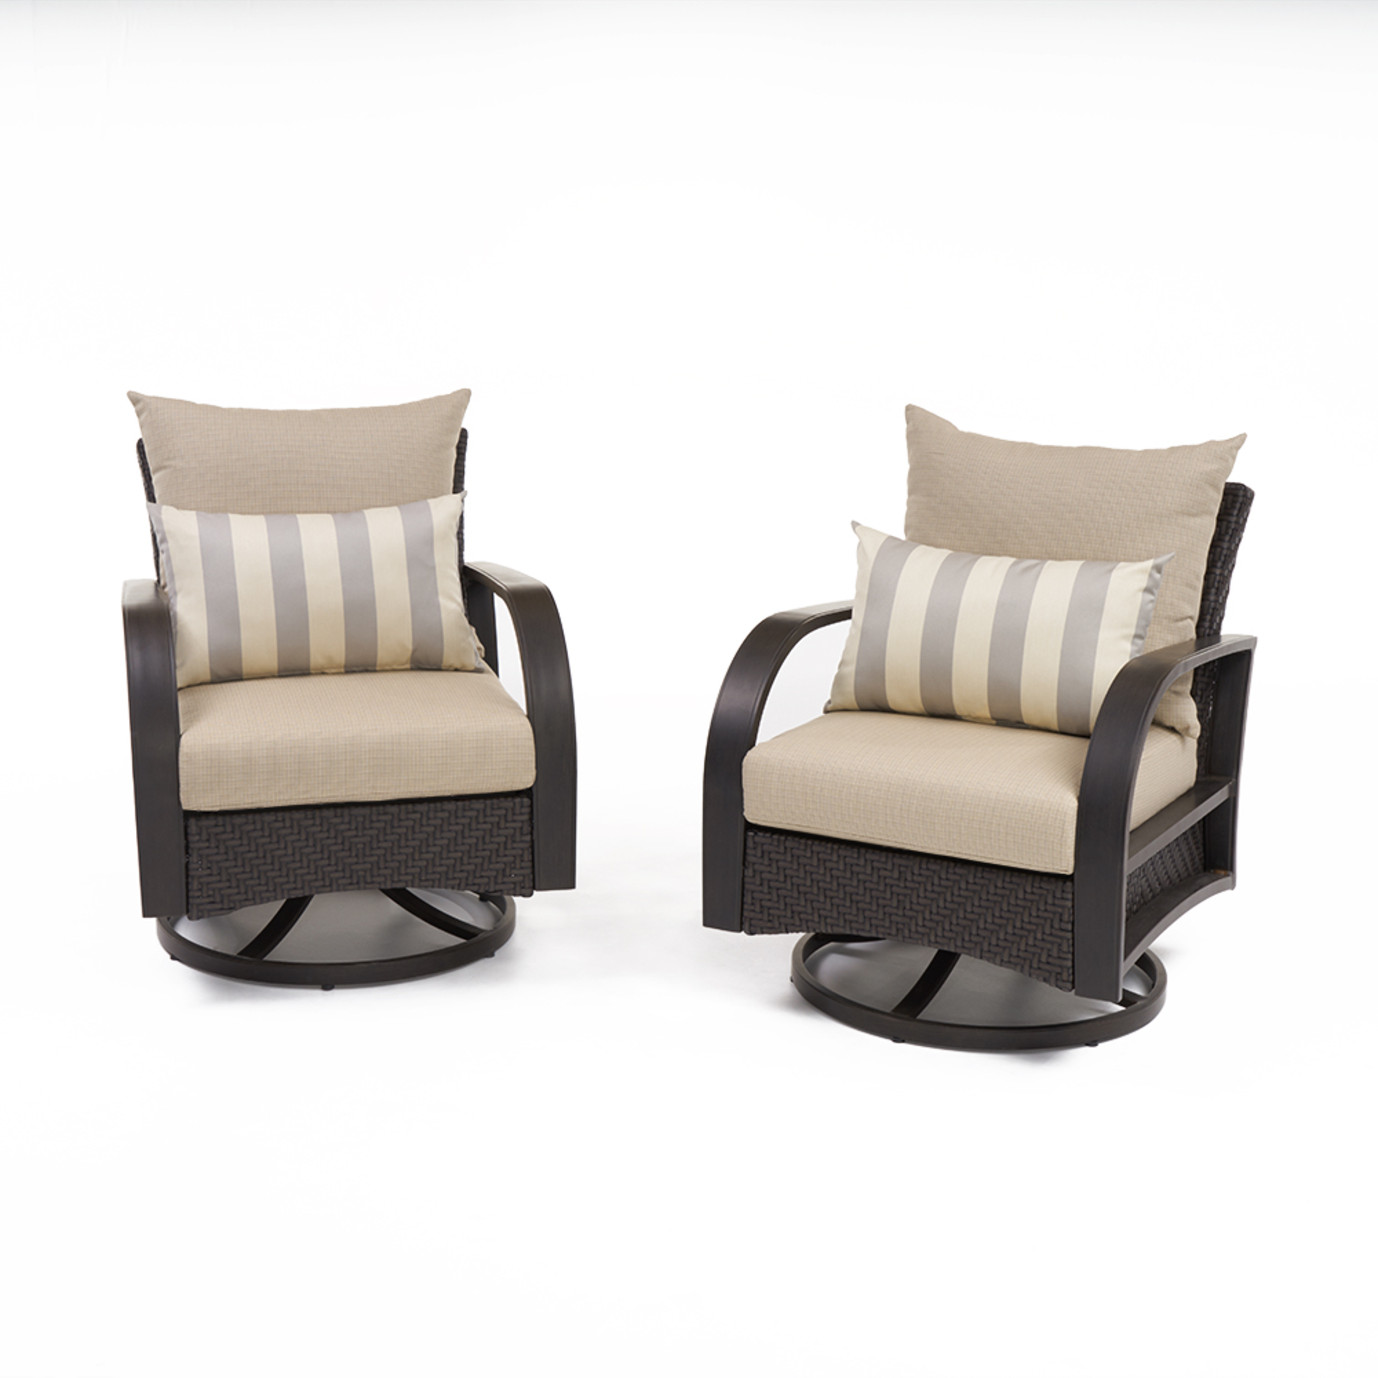 Barcelo™ Motion Club Chairs - Slate Gray